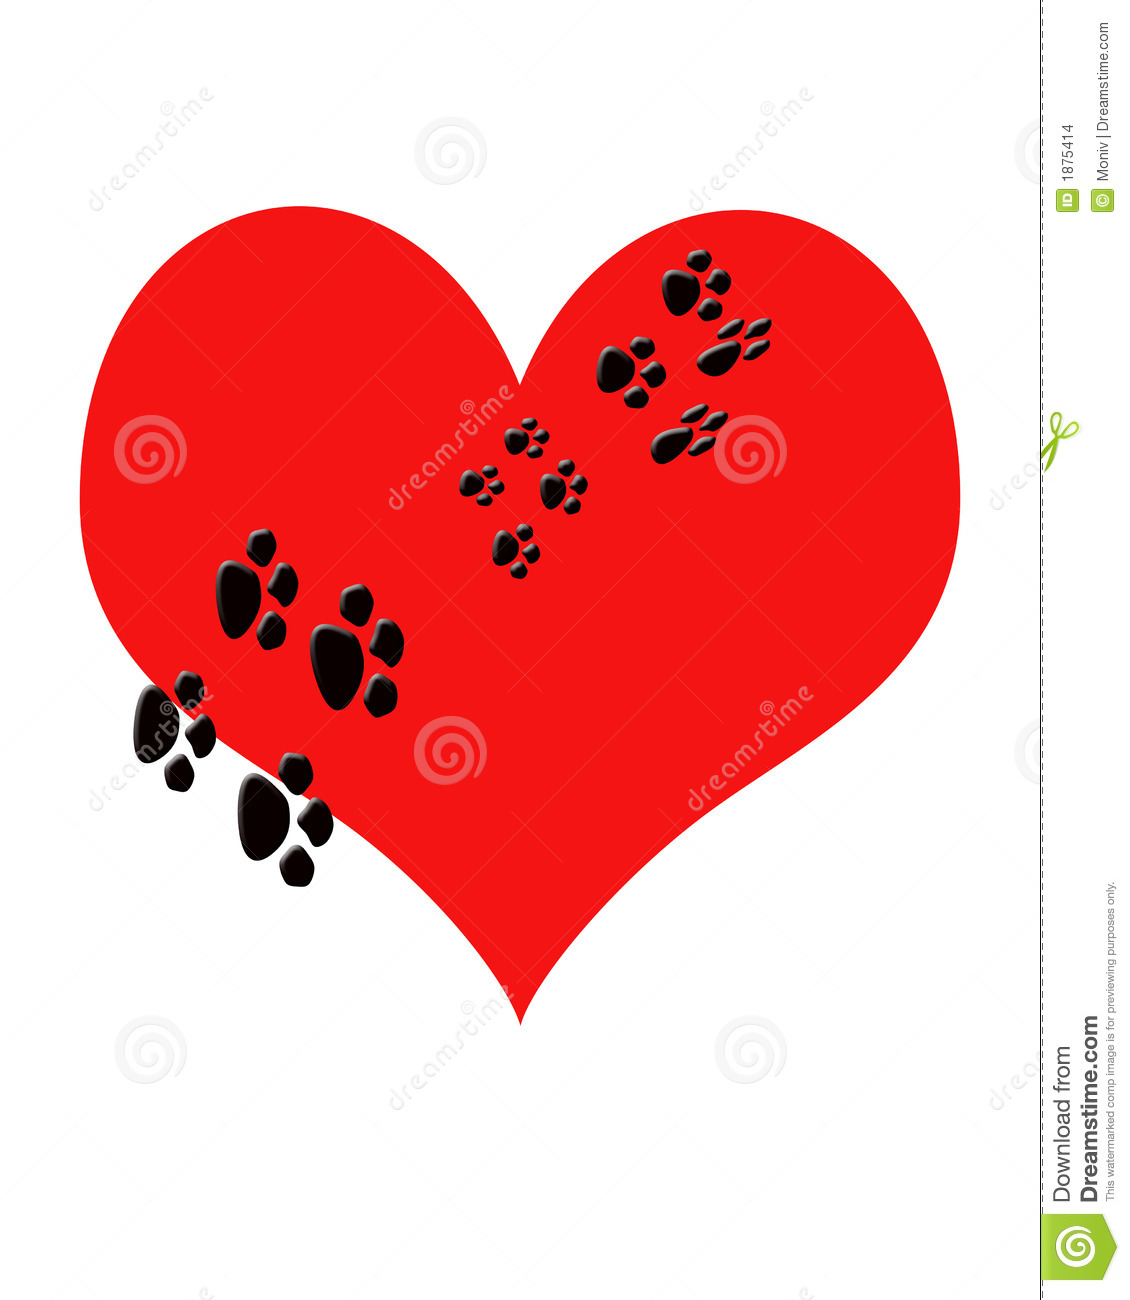 Dog hearts clipart image download Heart Paw Print Clipart - Clipart Kid image download